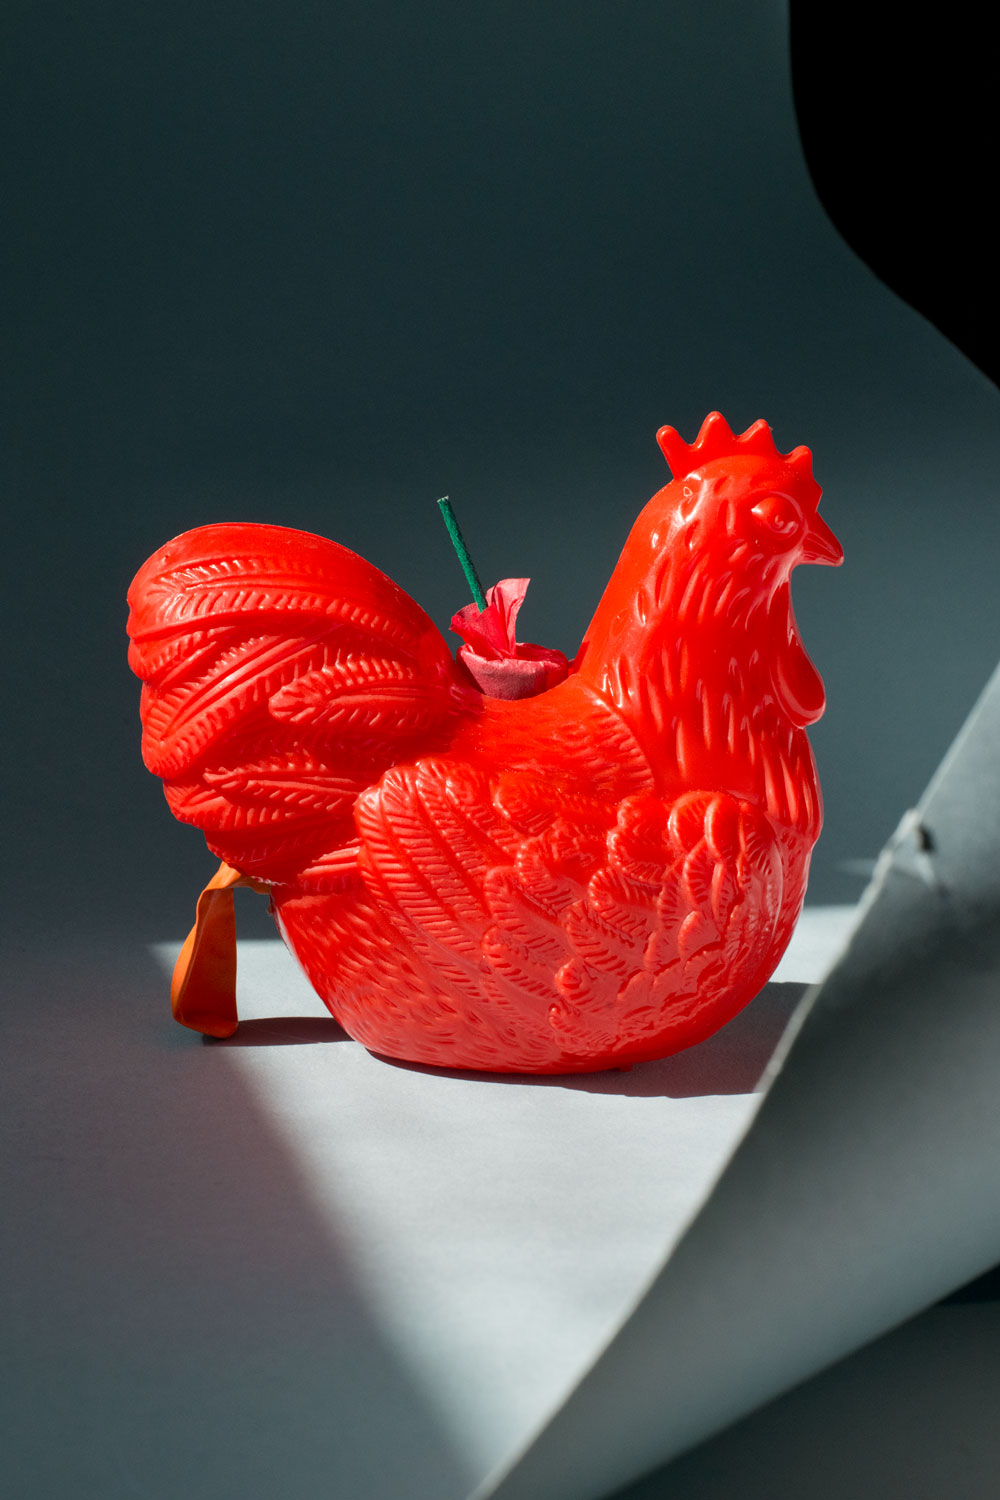 Red Chicken by Megan Pobywajlo. Image Courtesy of the Artist